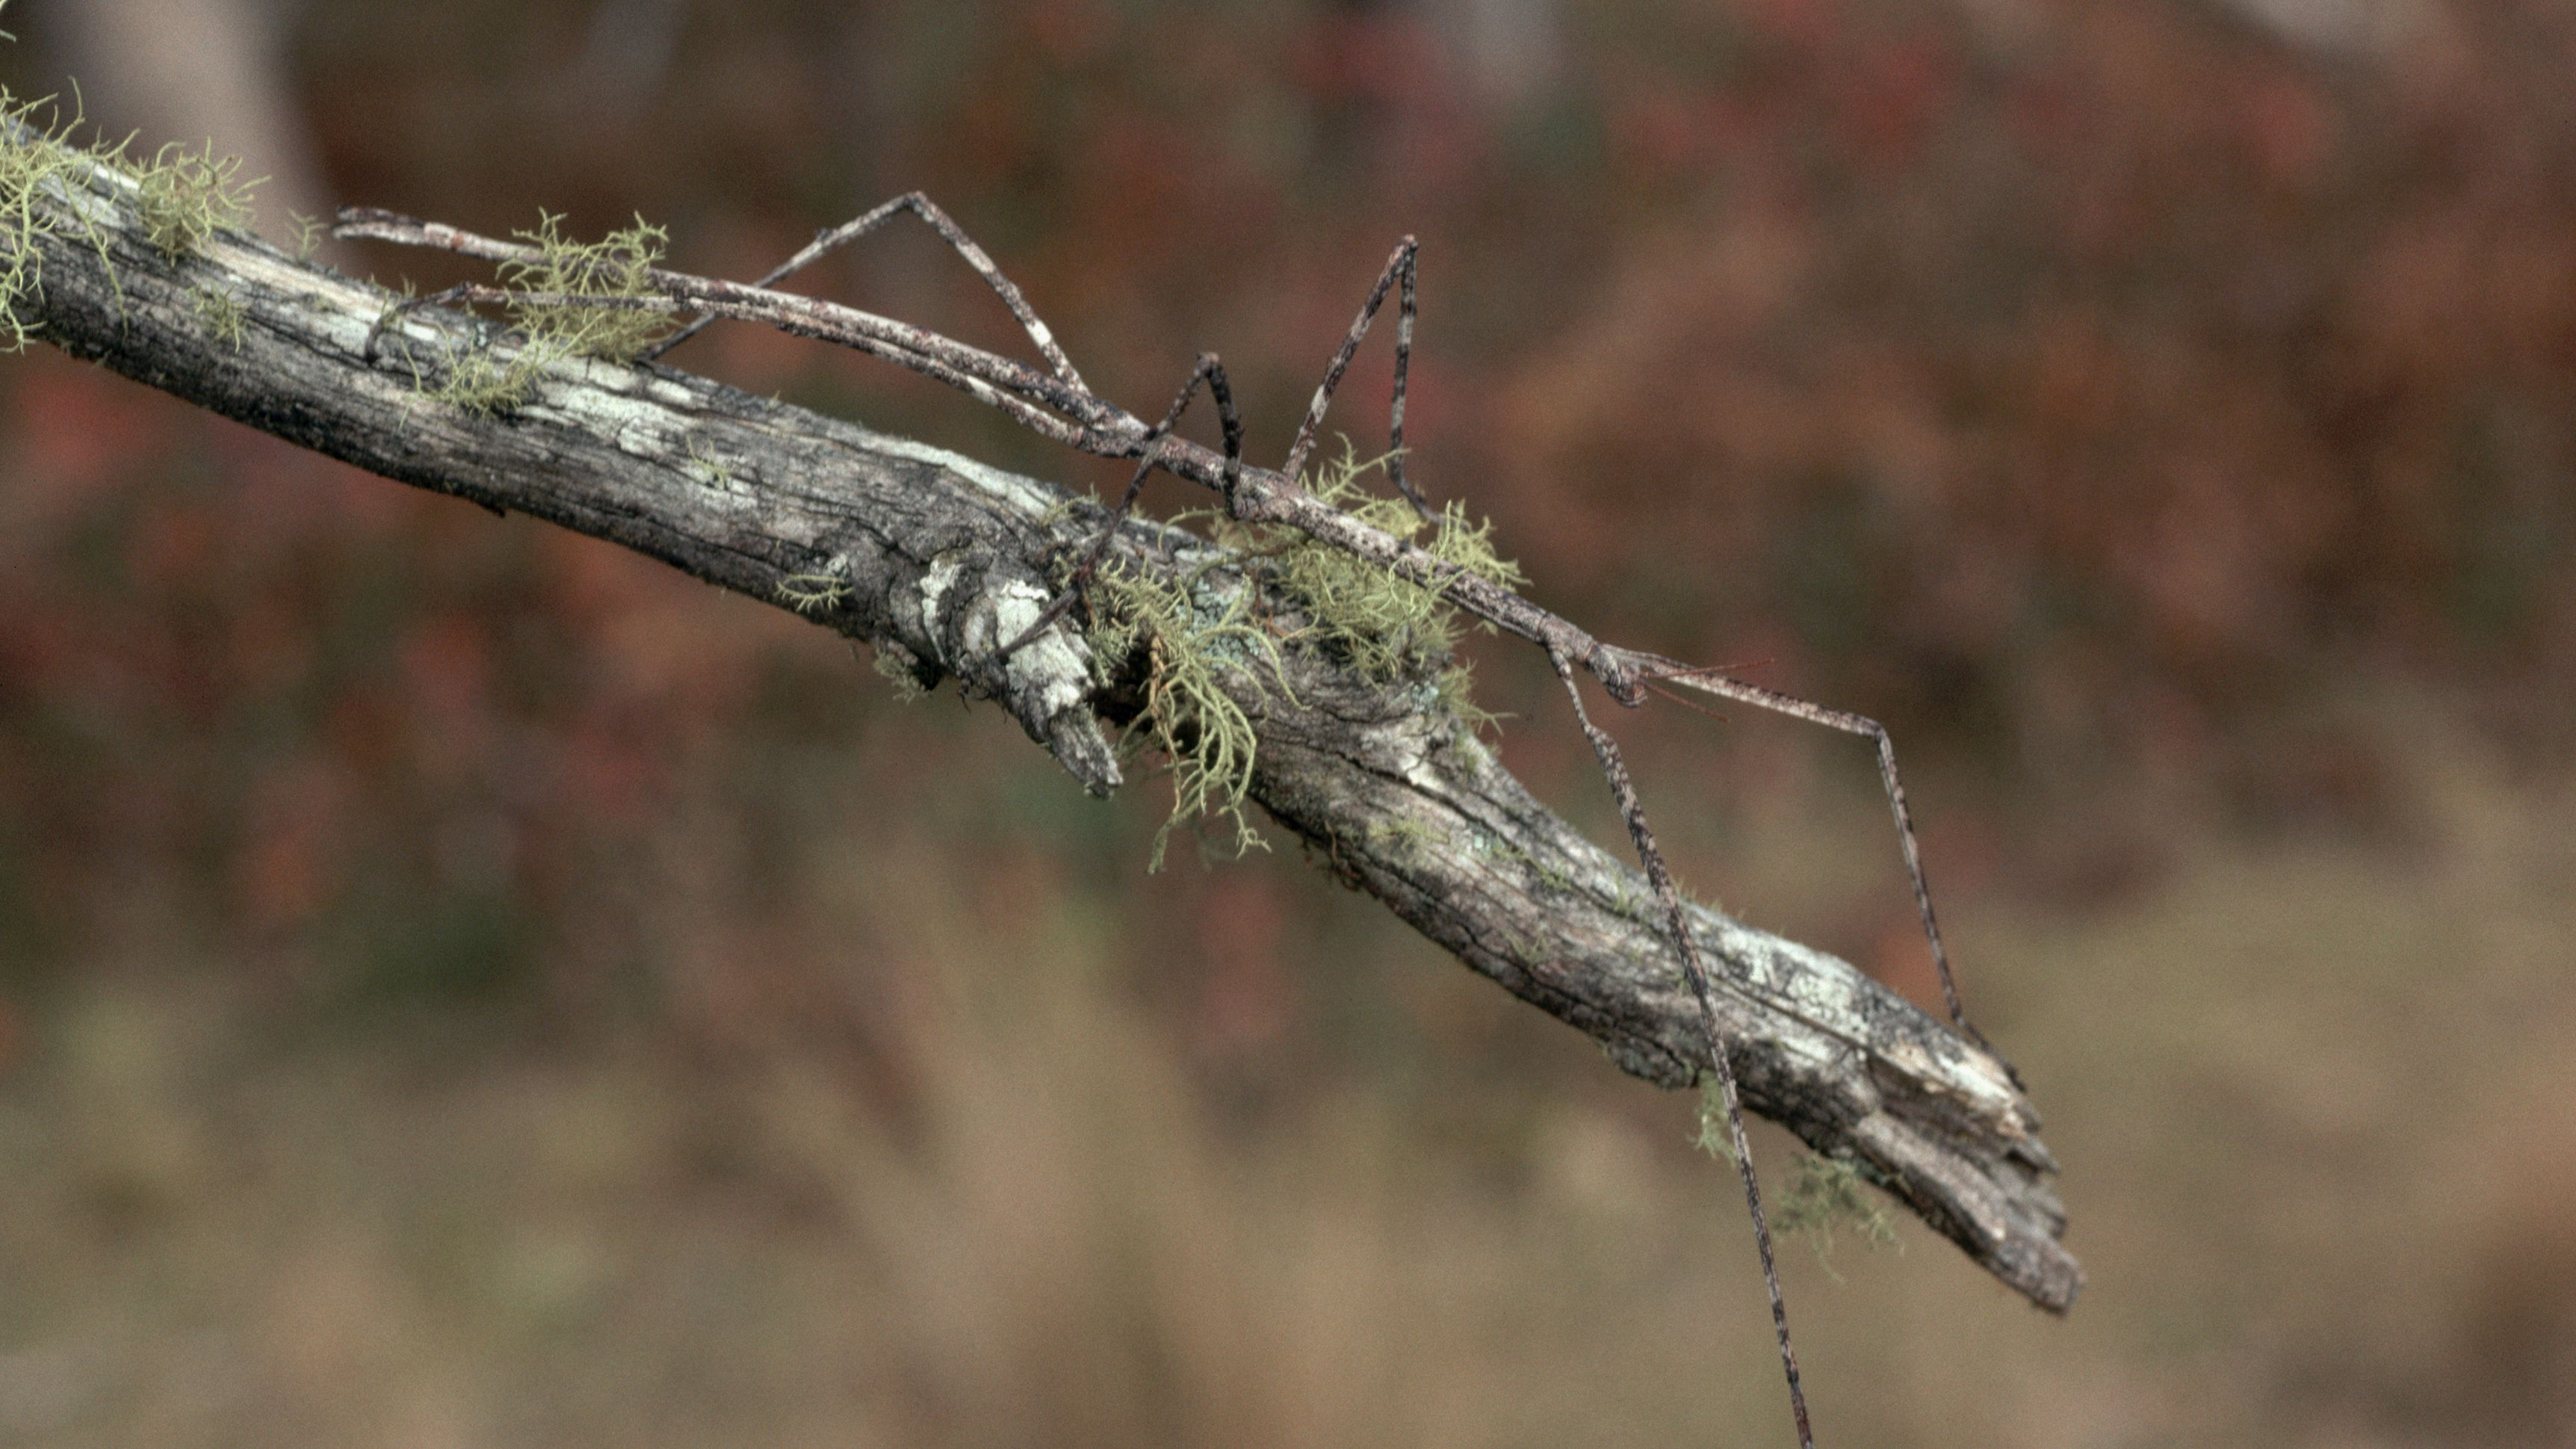 11 Amazing Examples of Insect Camouflage